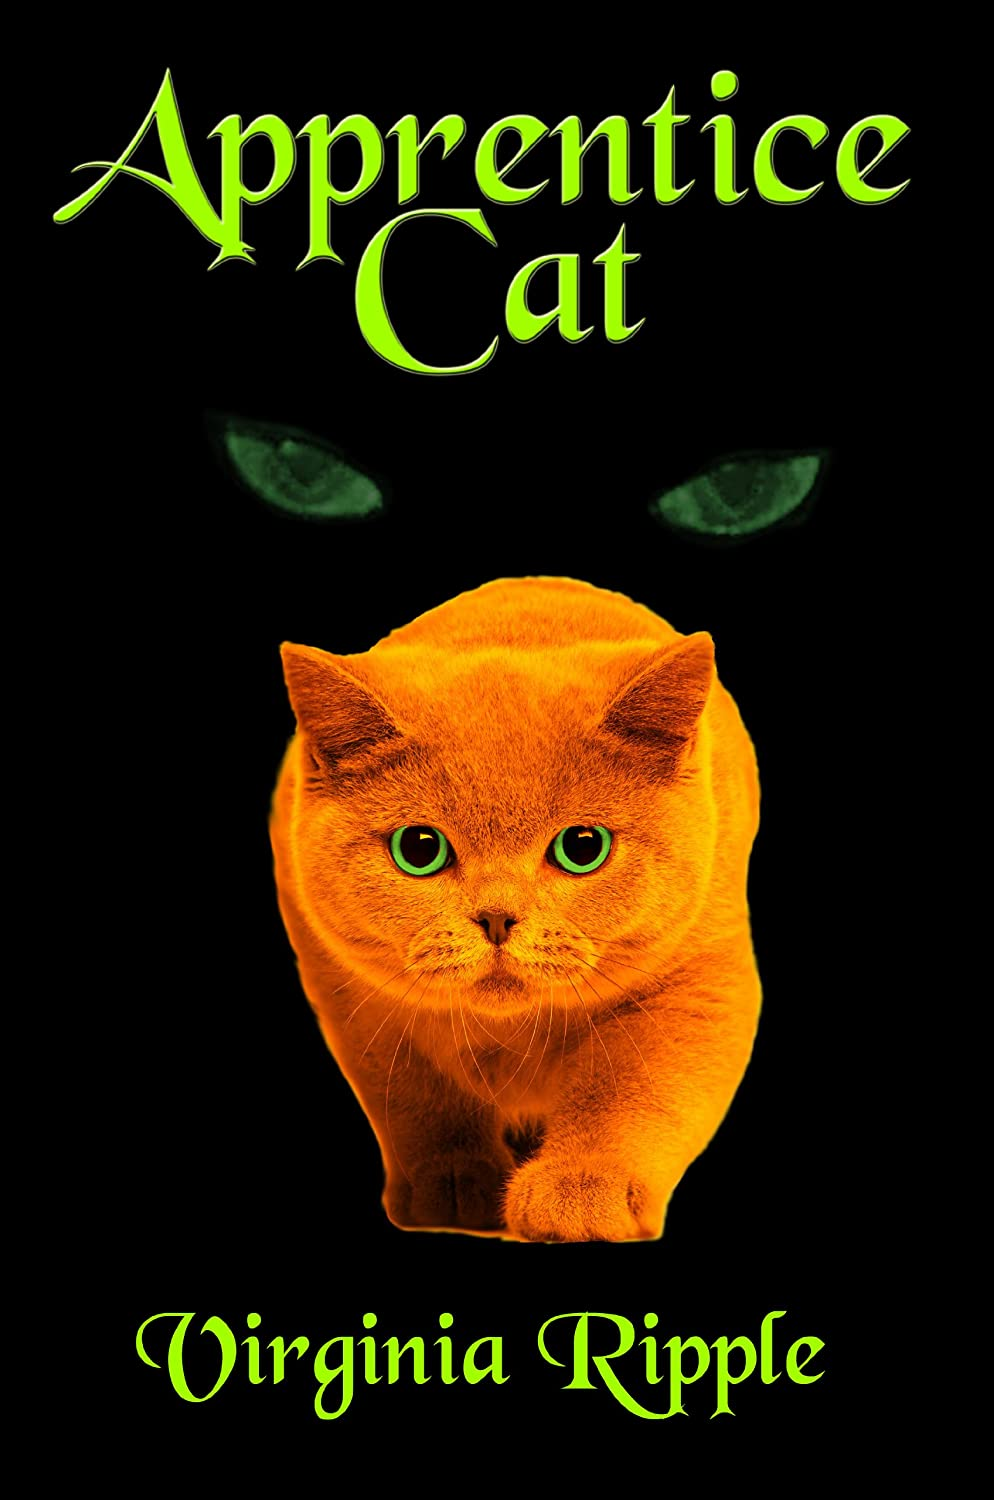 2Apprentice-Cat-Toby-with-mysterious-eyes